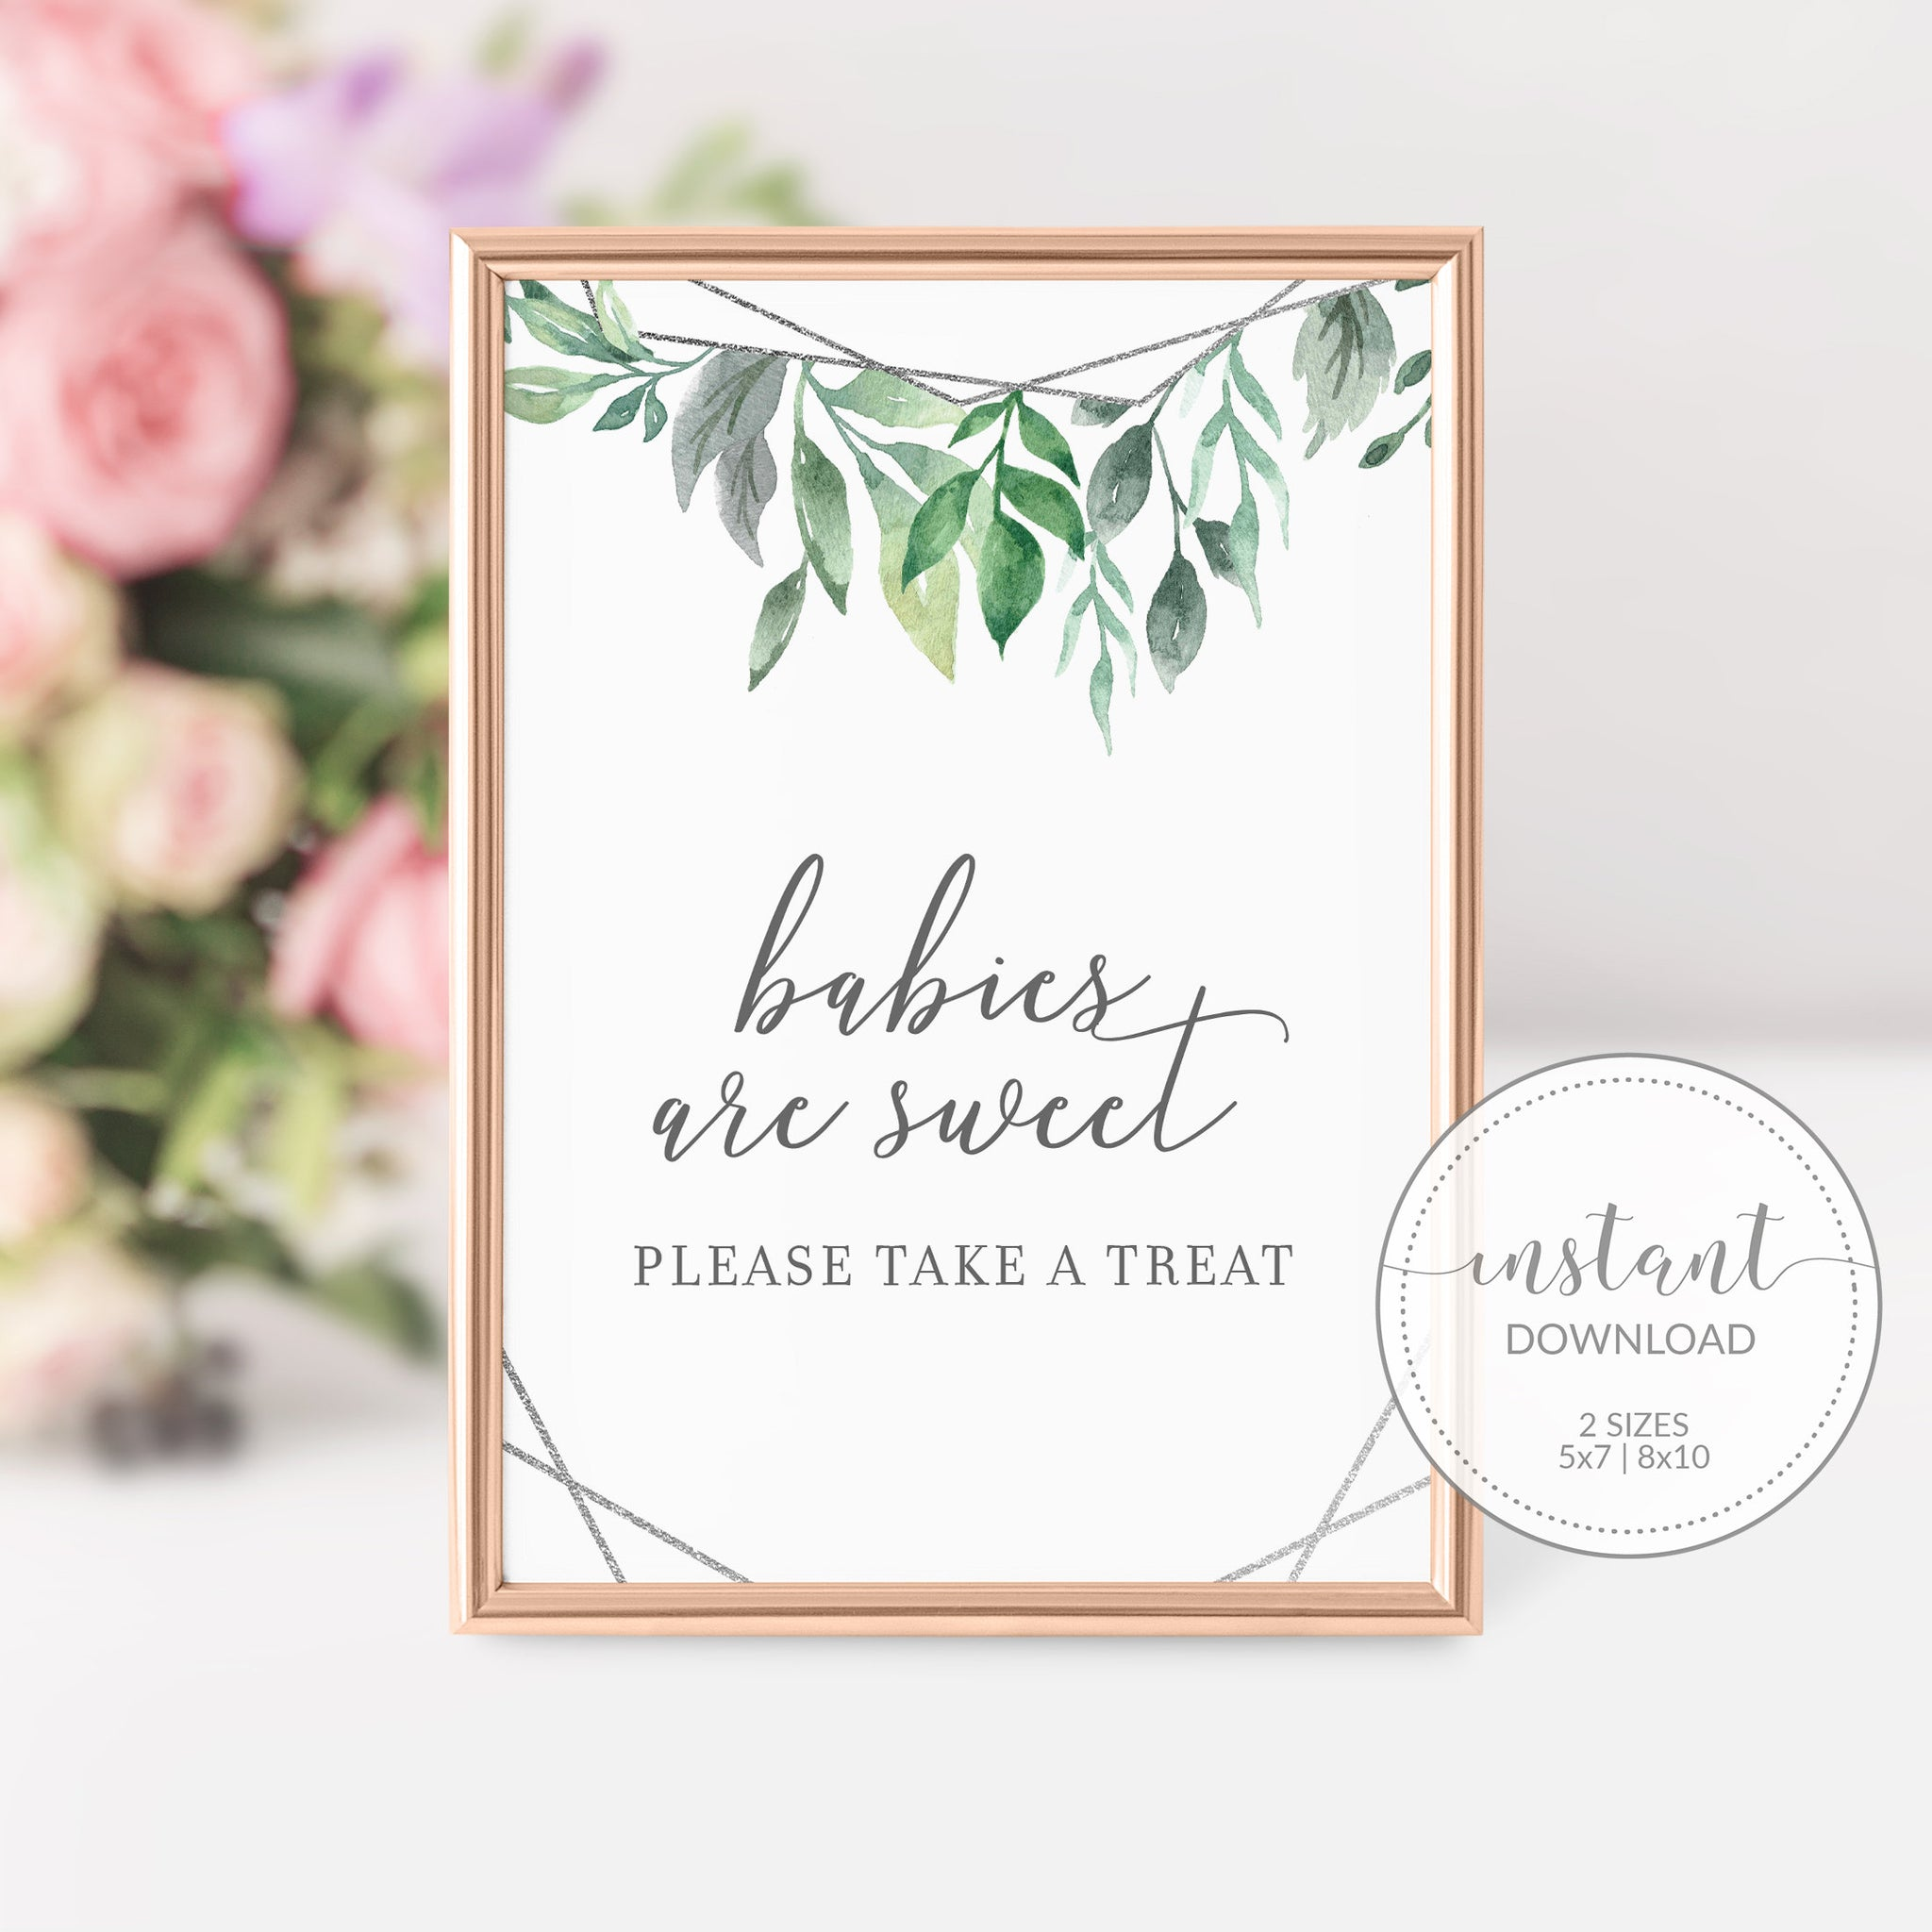 Geometric Silver Greenery Printable Treat Sign, INSTANT DOWNLOAD, Baby Shower Decorations, Sip and See Babies Are Sweet Dessert - GFS100 - @PlumPolkaDot